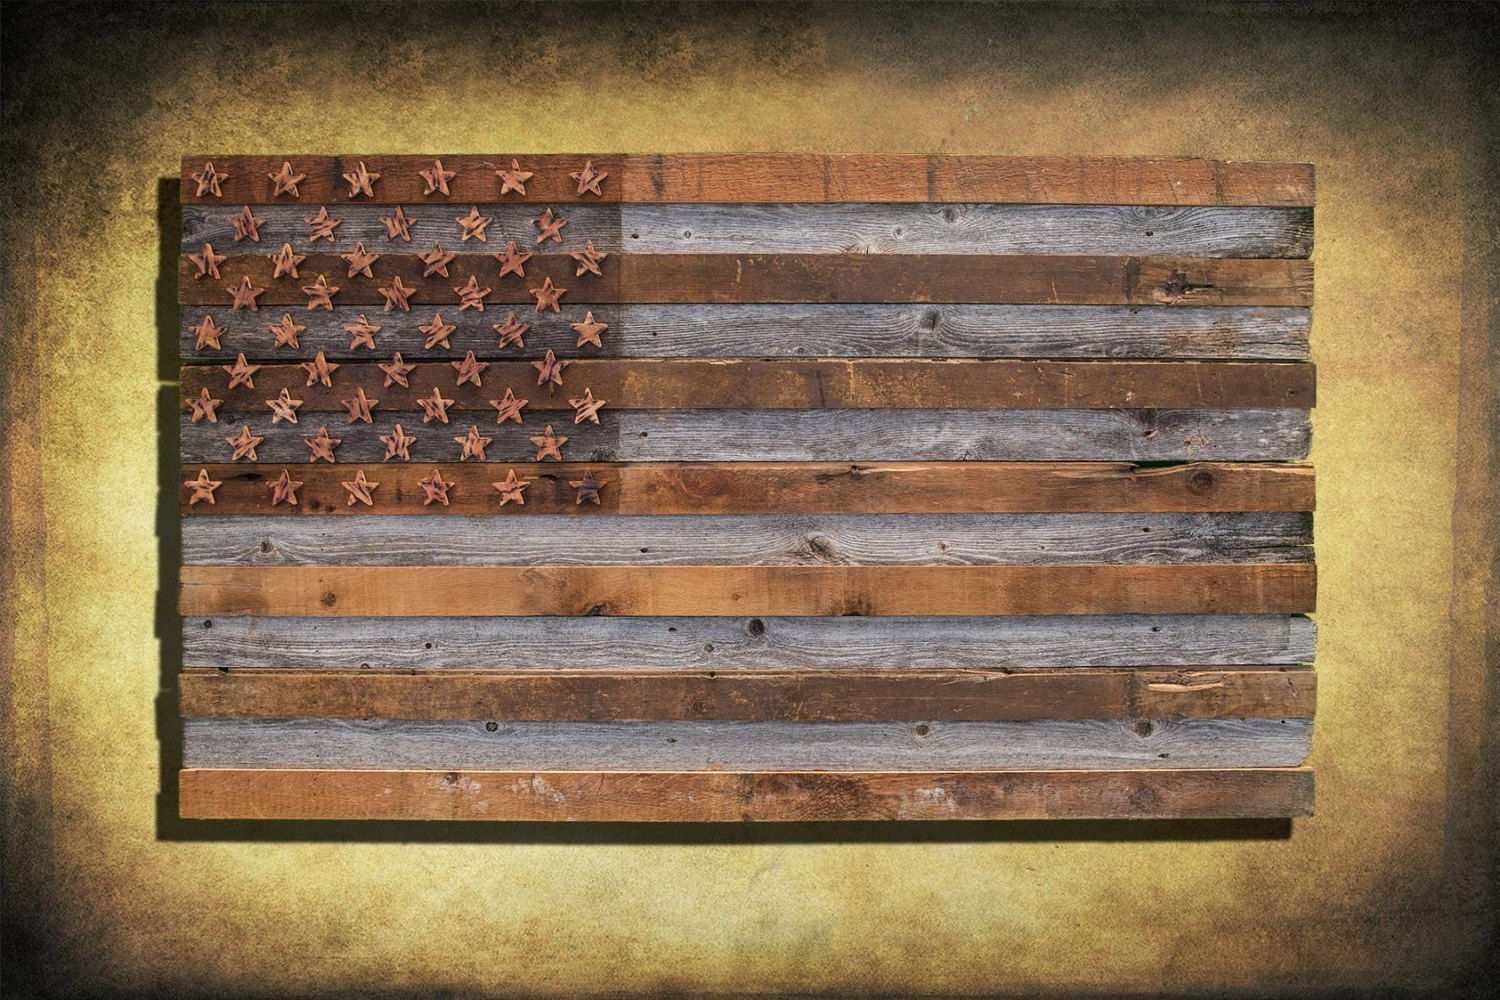 Barnwood American Flag, 100 Year Old Wood, One Of A Kind, 3d, Wooden Pertaining To Rustic American Flag Wall Art (View 10 of 20)